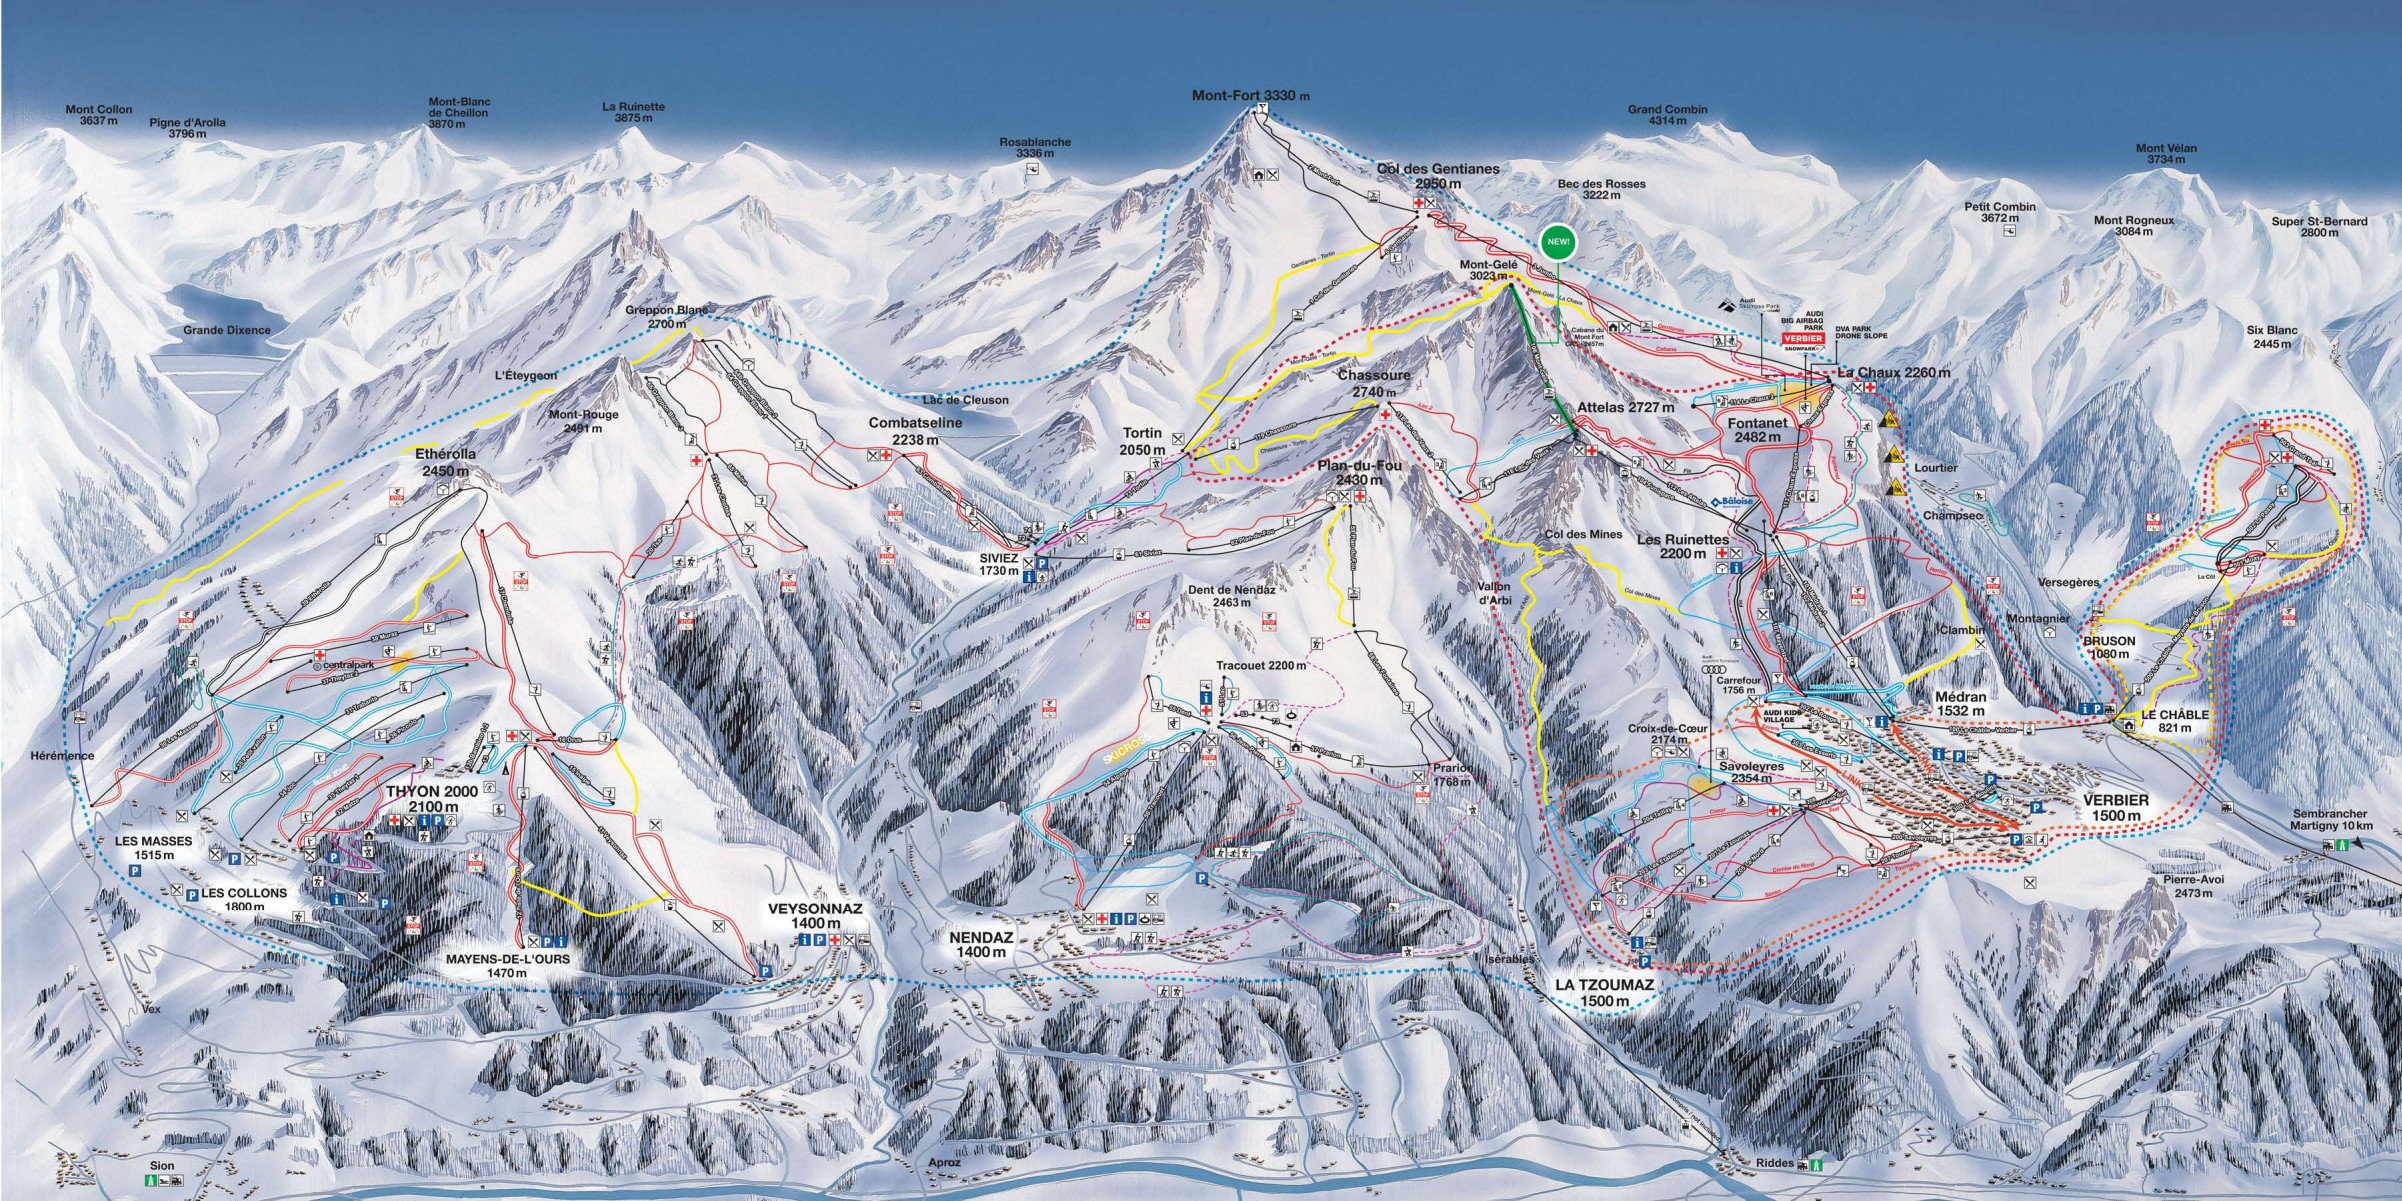 Verbier Piste Map Verbier, One of the best ski resorts in the world.